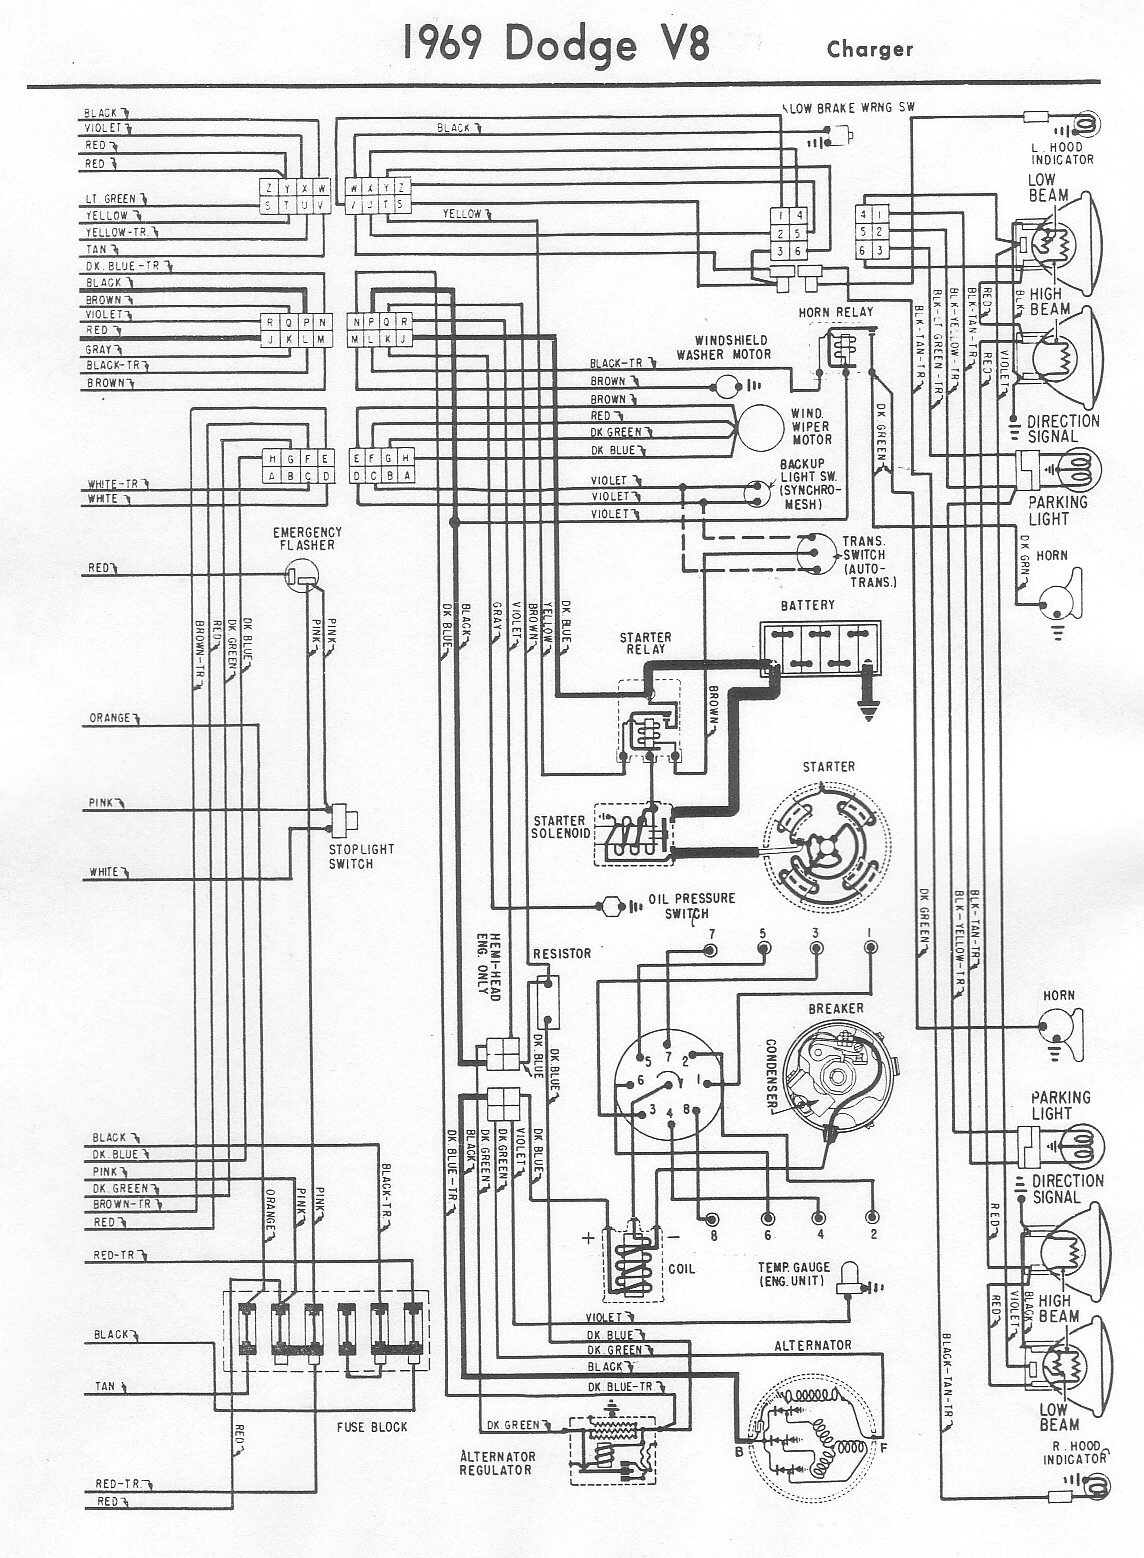 1968 Gtx Wiring Diagram - Data Wiring Diagram Blog Wiring Diagrams Road Runner on 1968 barracuda wiring diagram, 1968 charger wiring diagram, 1970 road runner wheels, 1970 road runner horn, 1969 barracuda wiring diagram, 1970 road runner specifications, 1971 road runner wiring diagram, 1973 duster wiring diagram, 1968 gtx wiring diagram, 1972 duster wiring diagram, 1962 corvette wiring diagram, 1967 corvette wiring diagram, 1968 firebird wiring diagram, 1969 camaro wiring diagram, 1967 gto wiring diagram, 1969 corvette wiring diagram, 1970 road runner carburetor, 1968 corvette wiring diagram, 1969 road runner wiring diagram, 1971 corvette wiring diagram,